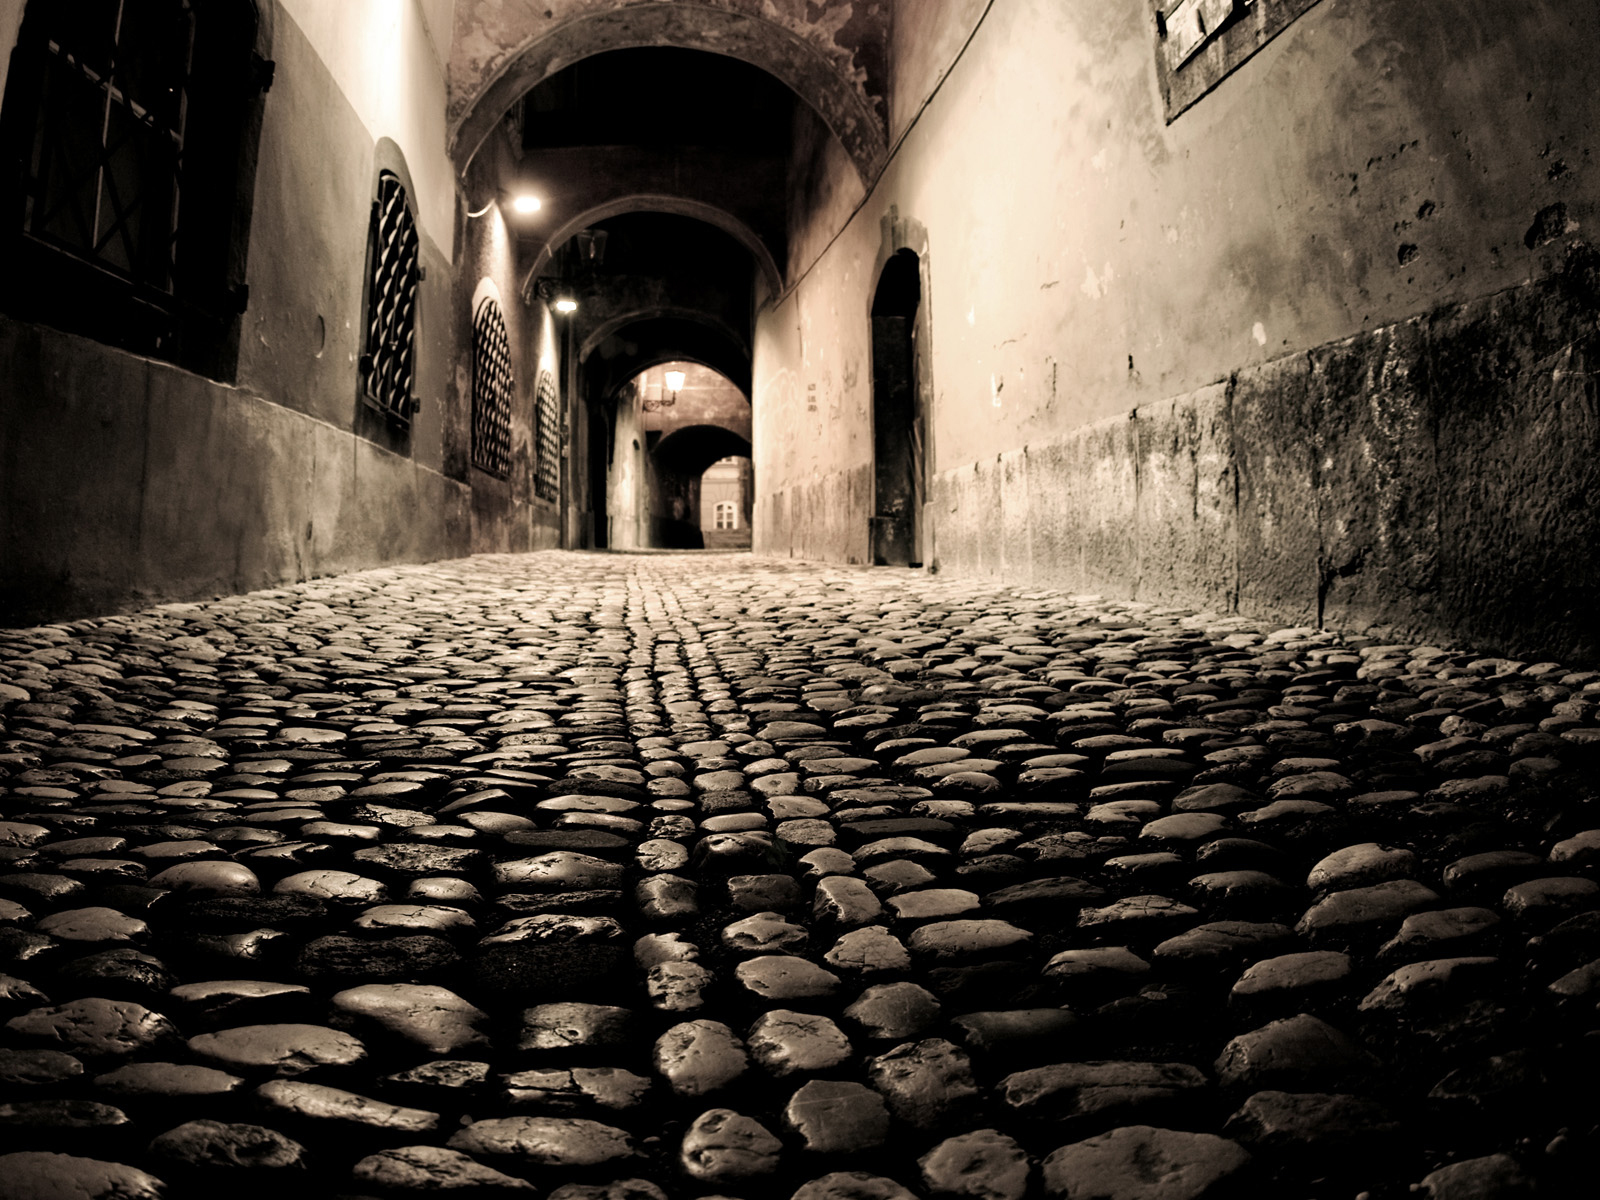 Stone Paving Old Street Night Lighting HD Wallpaper | HD ...